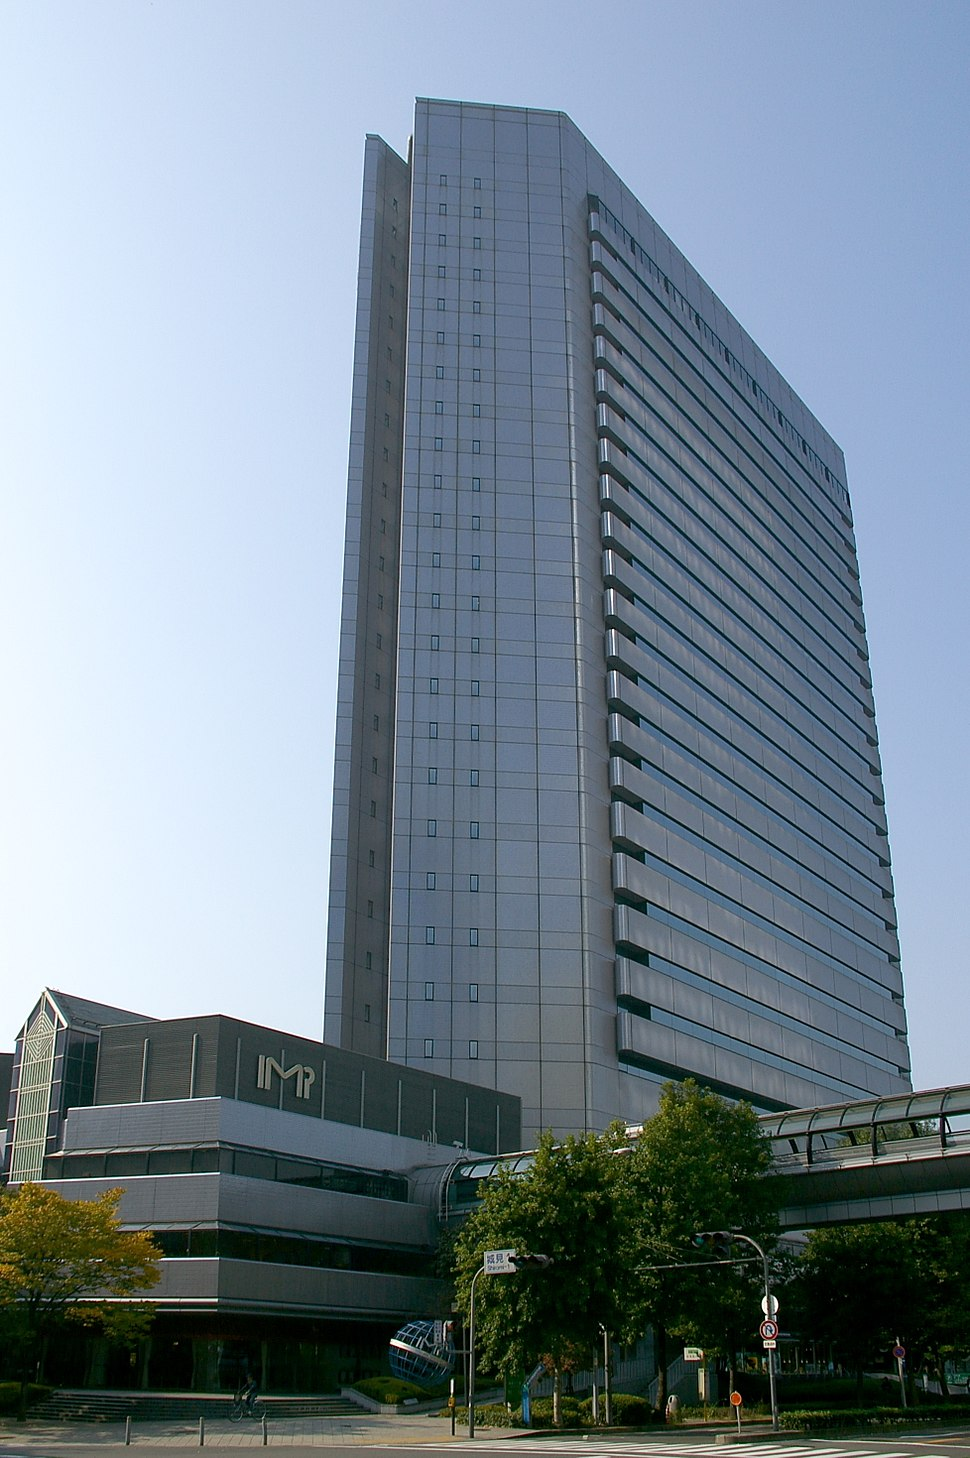 The Panasonic IMP Building in Osaka, Japan